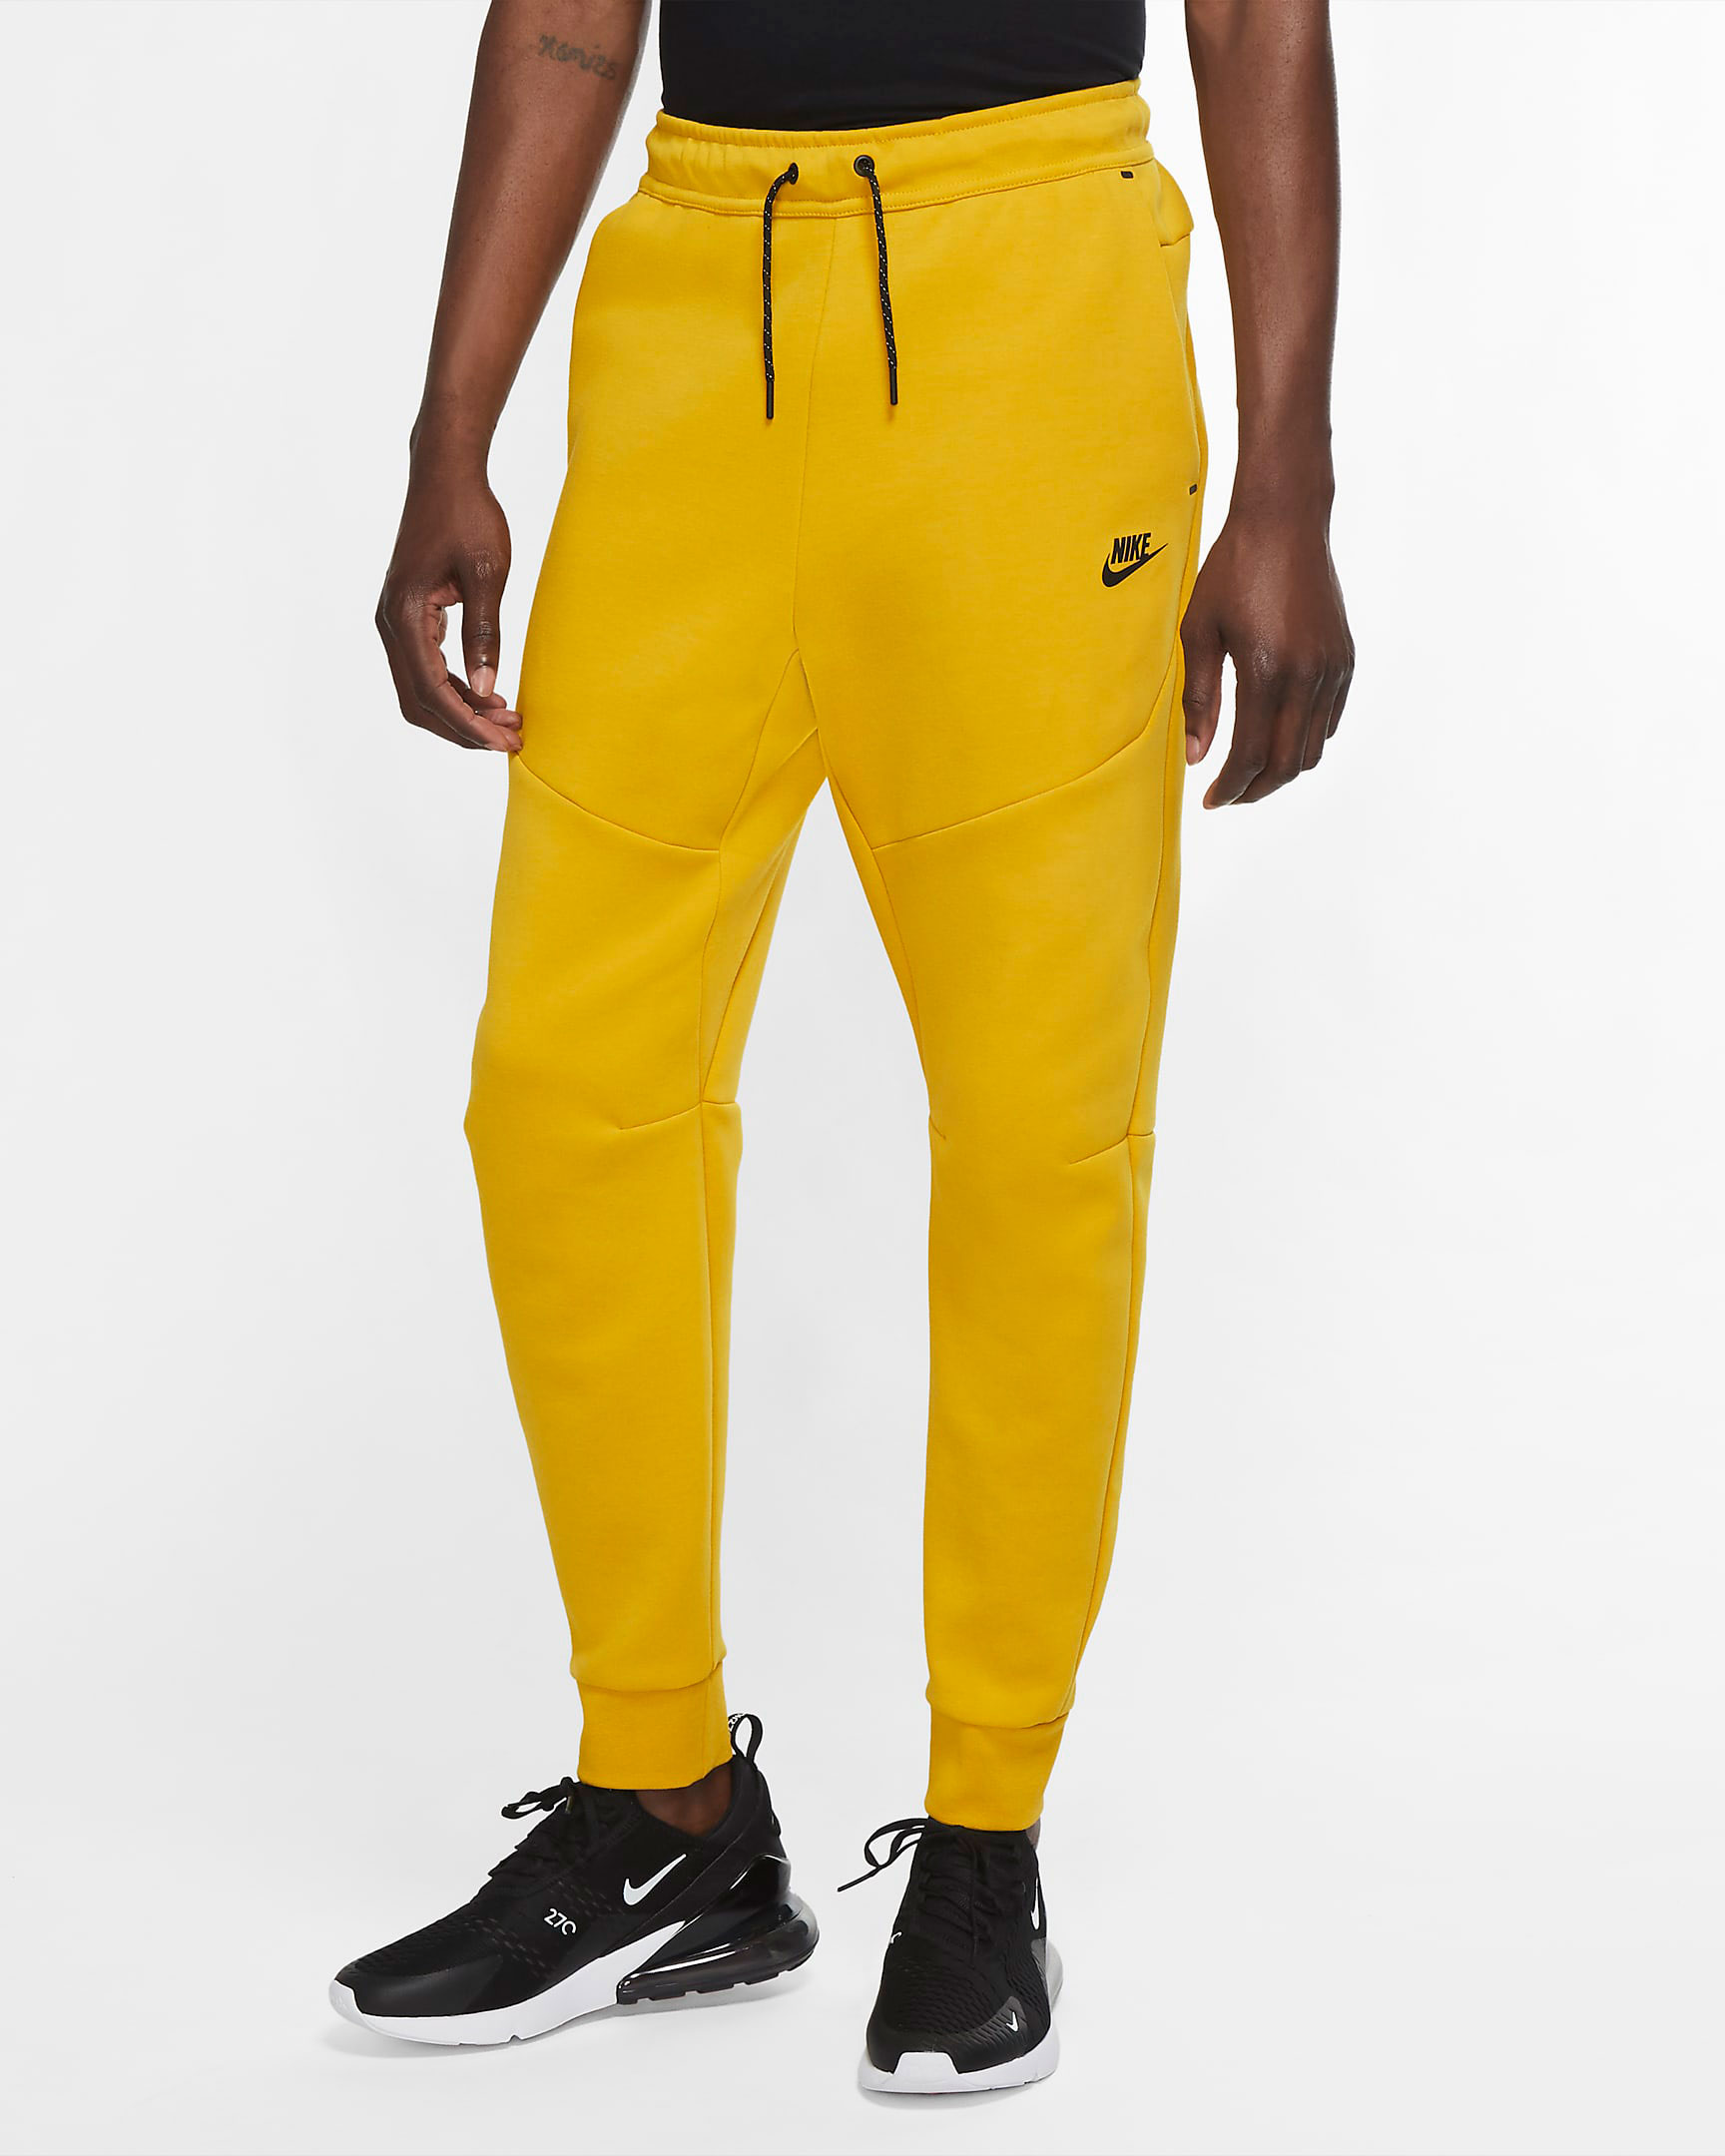 nike-dunk-high-varsity-maize-yellow-black-jogger-pants-1